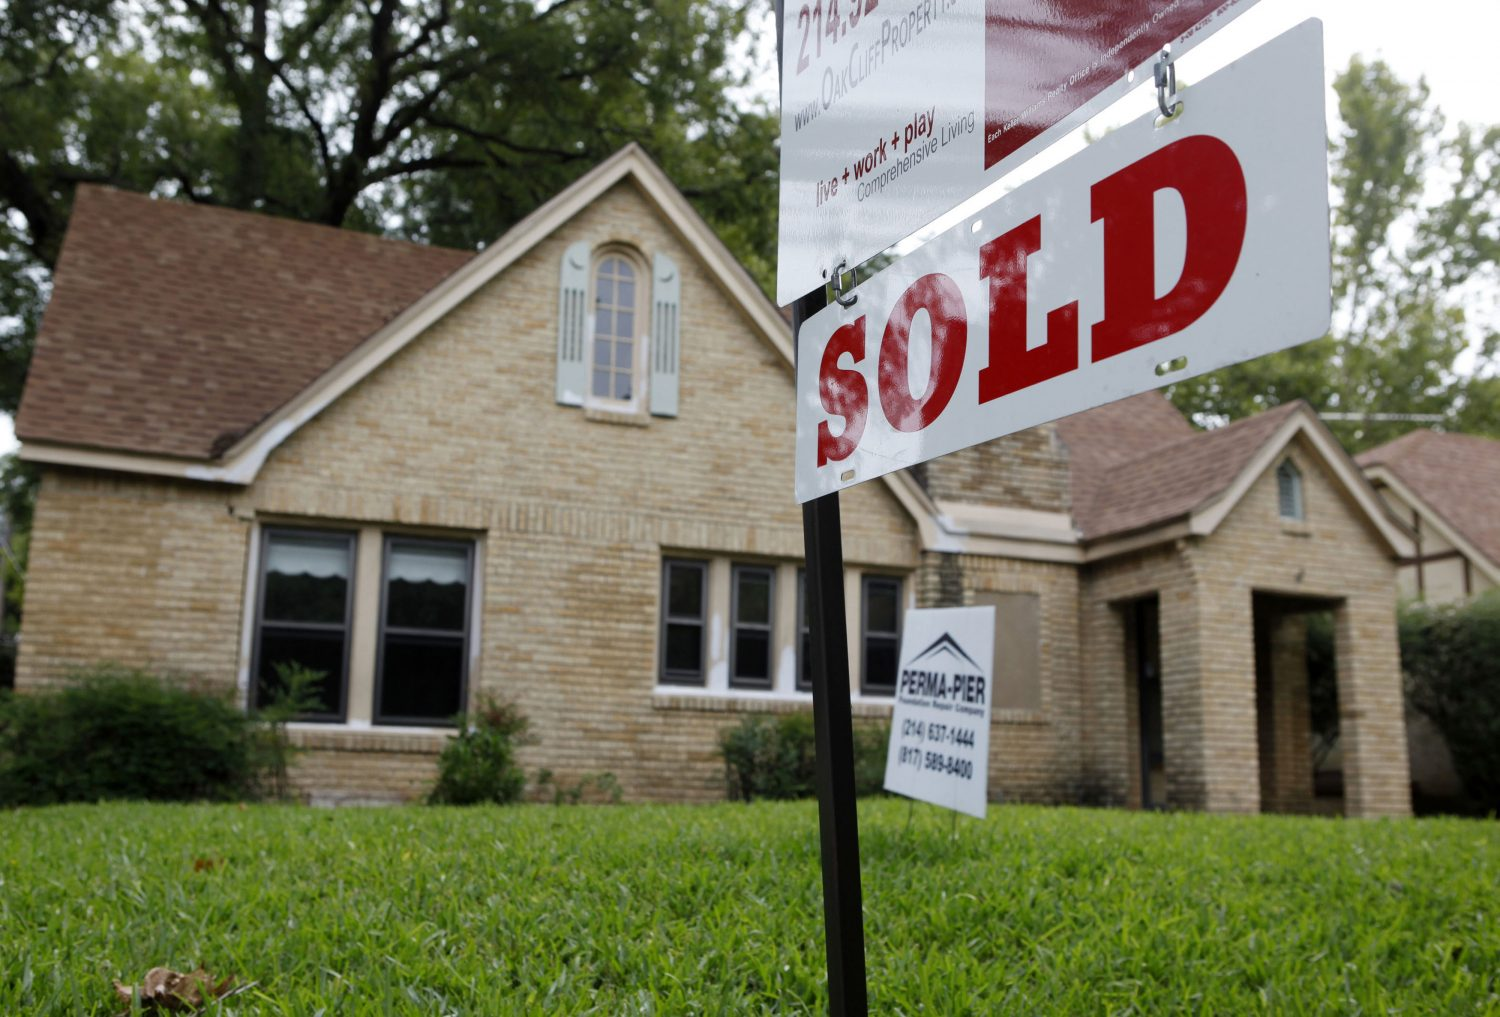 FILE PHOTO - A sold sign hangs in front of a house in Dallas, Texas September 24, 2009. REUTERS/Jessica Rinaldi